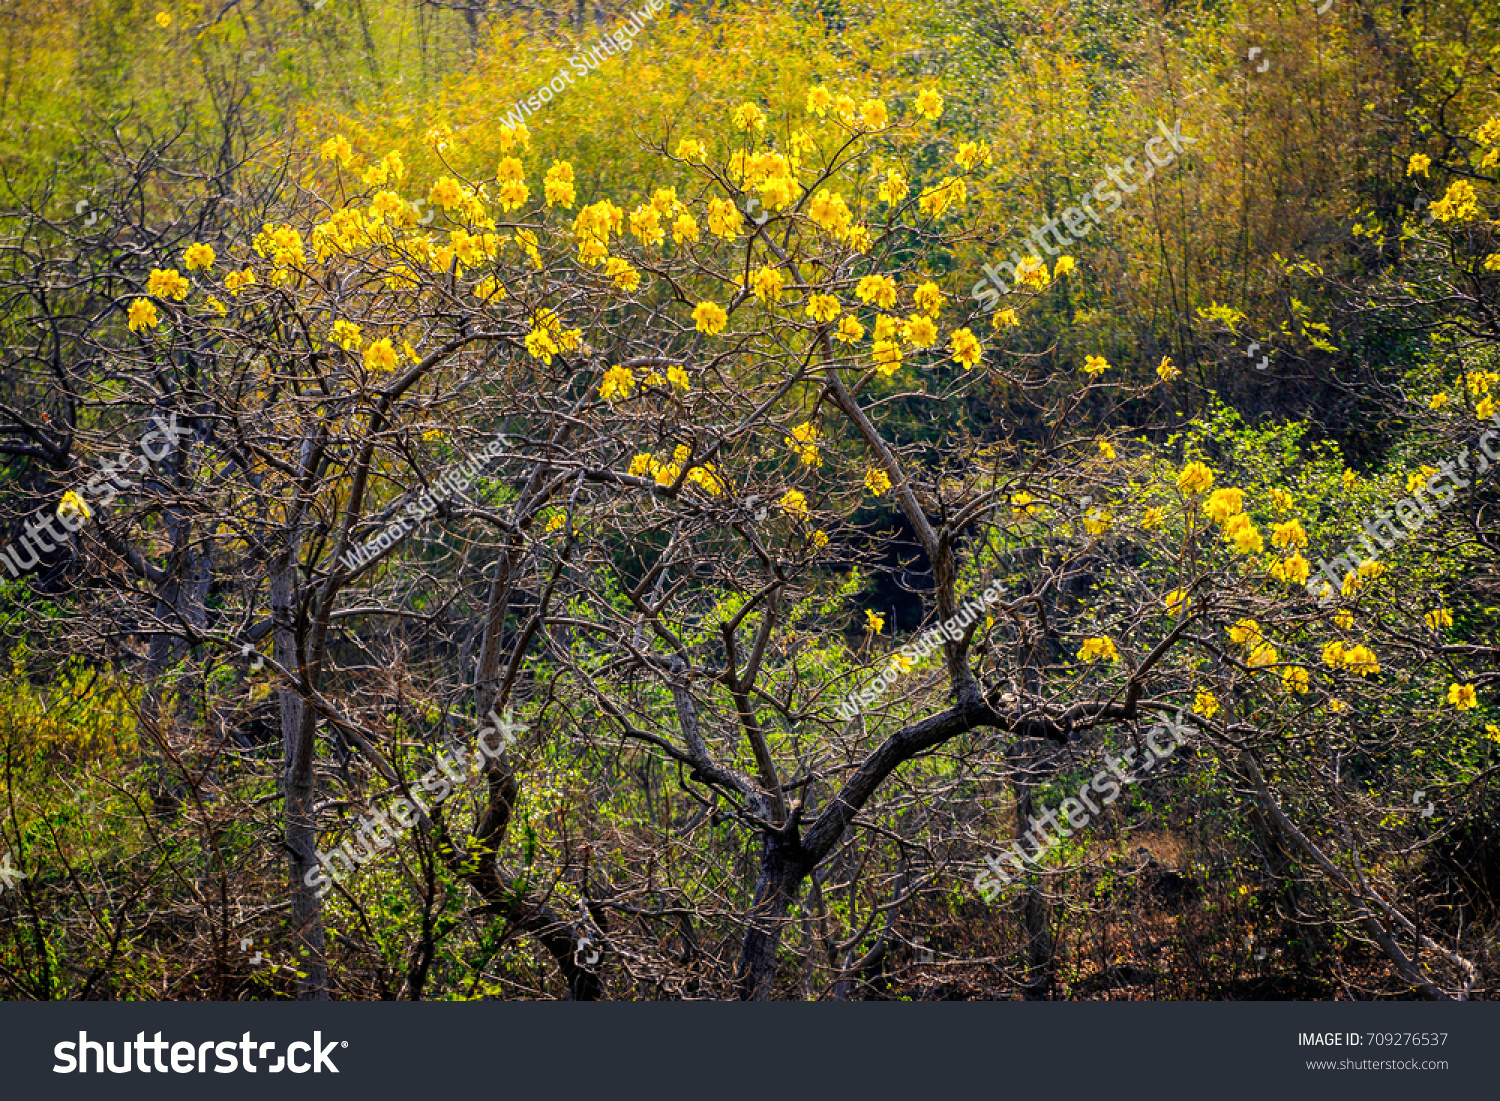 Dry yellow flowers winter season big stock photo edit now dry yellow flowers in winter season big tree beautiful in nature mightylinksfo